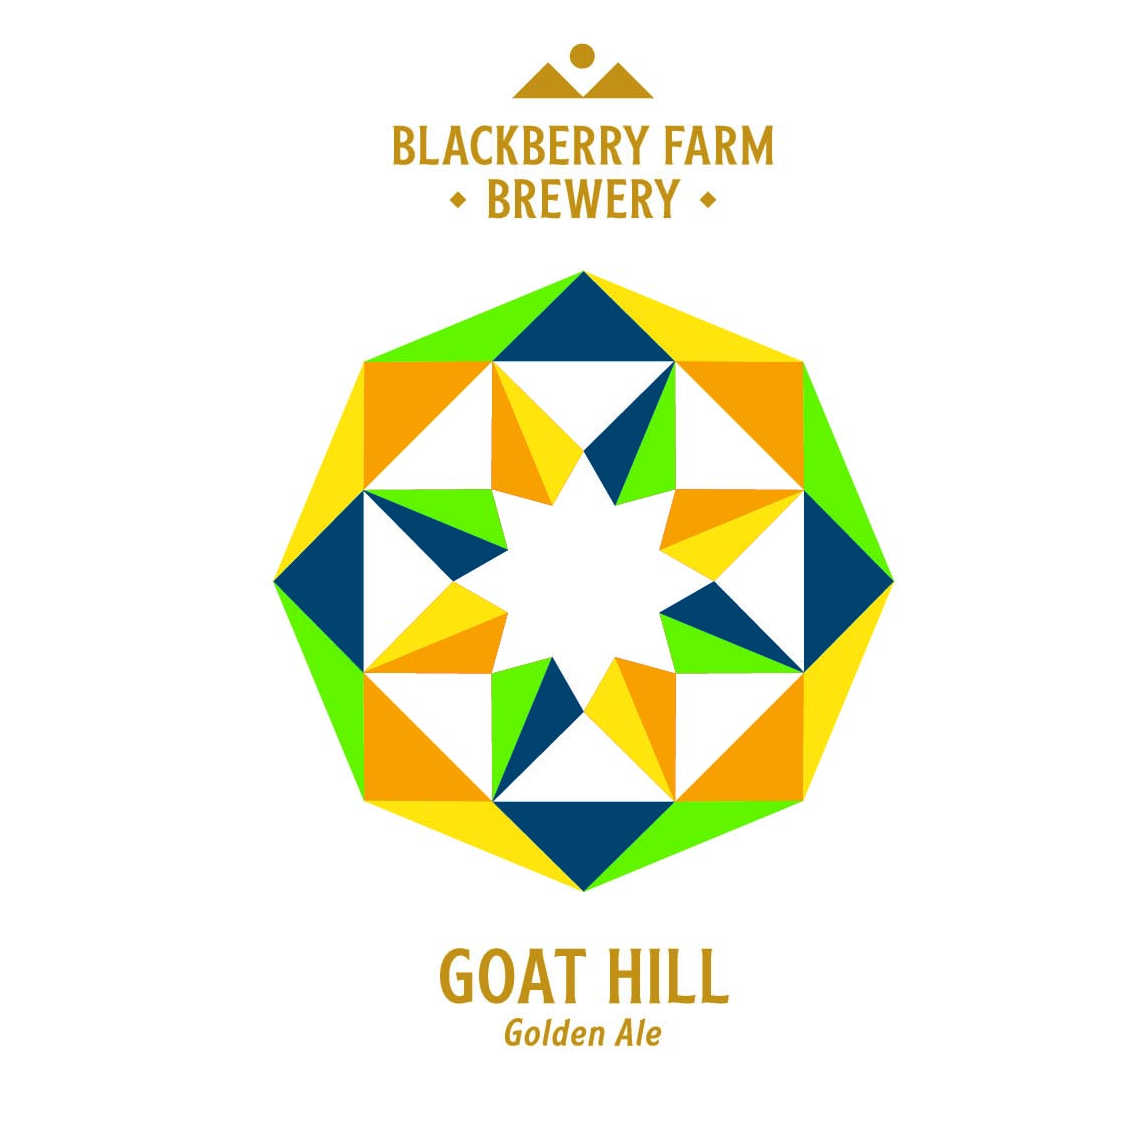 Blackberry Farm Brewery 'Goat Hill' Golden Ale 12oz Can